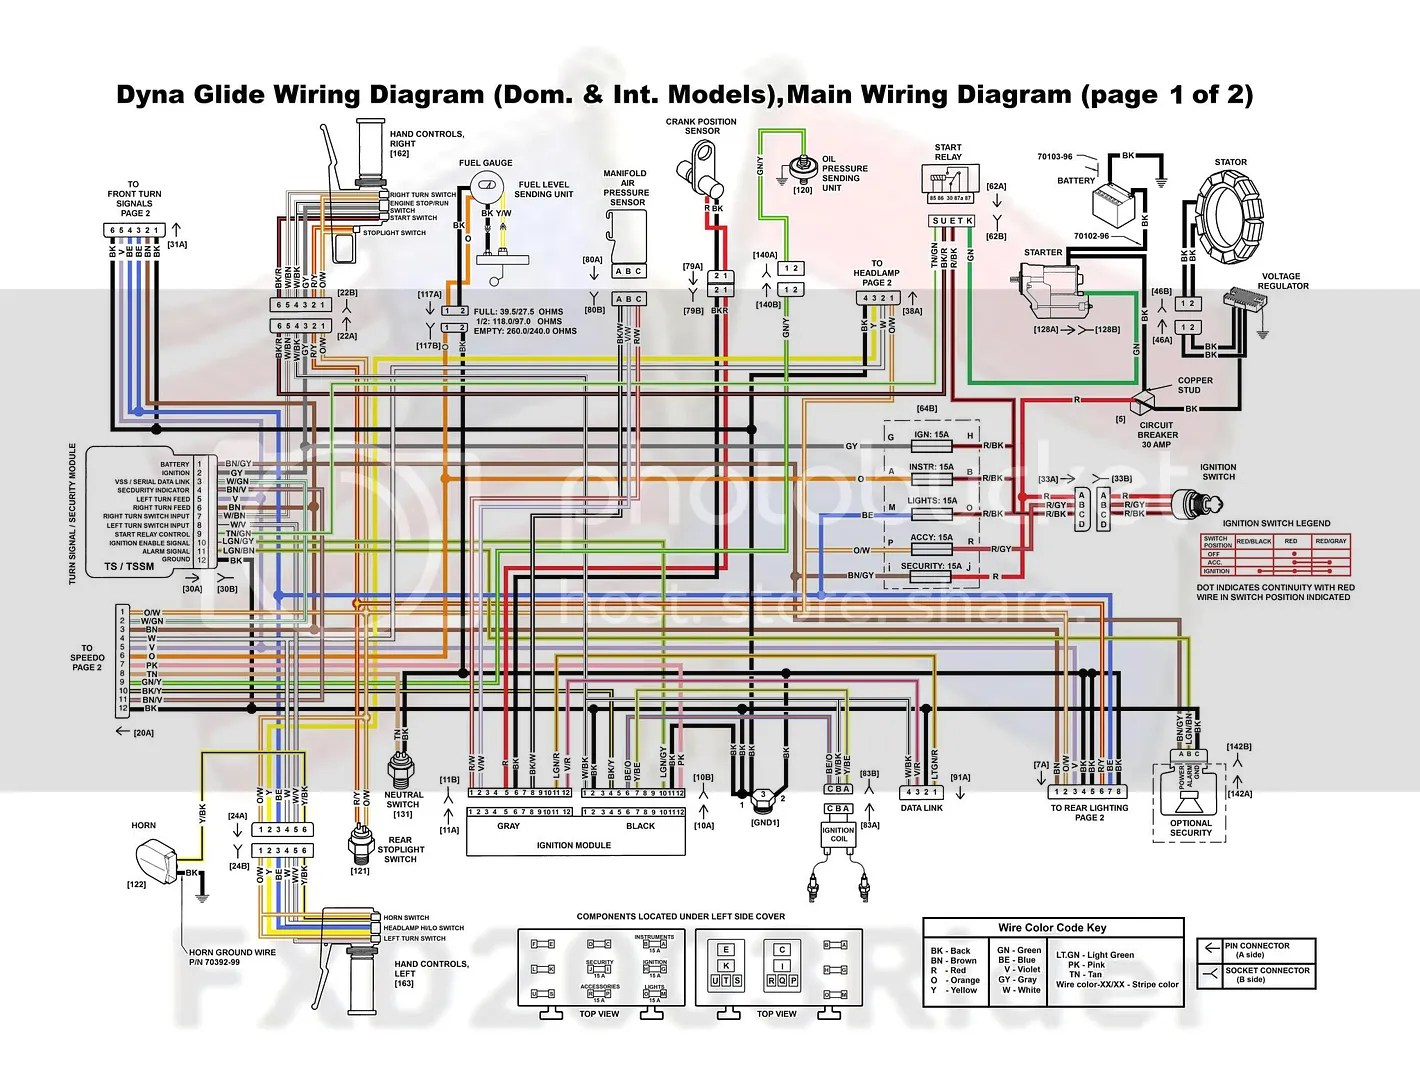 dyna turn signal wiring diagram wiring diagrams schema1997 dyna wiring diagram wiring diagram experts dyna turn [ 1420 x 1080 Pixel ]